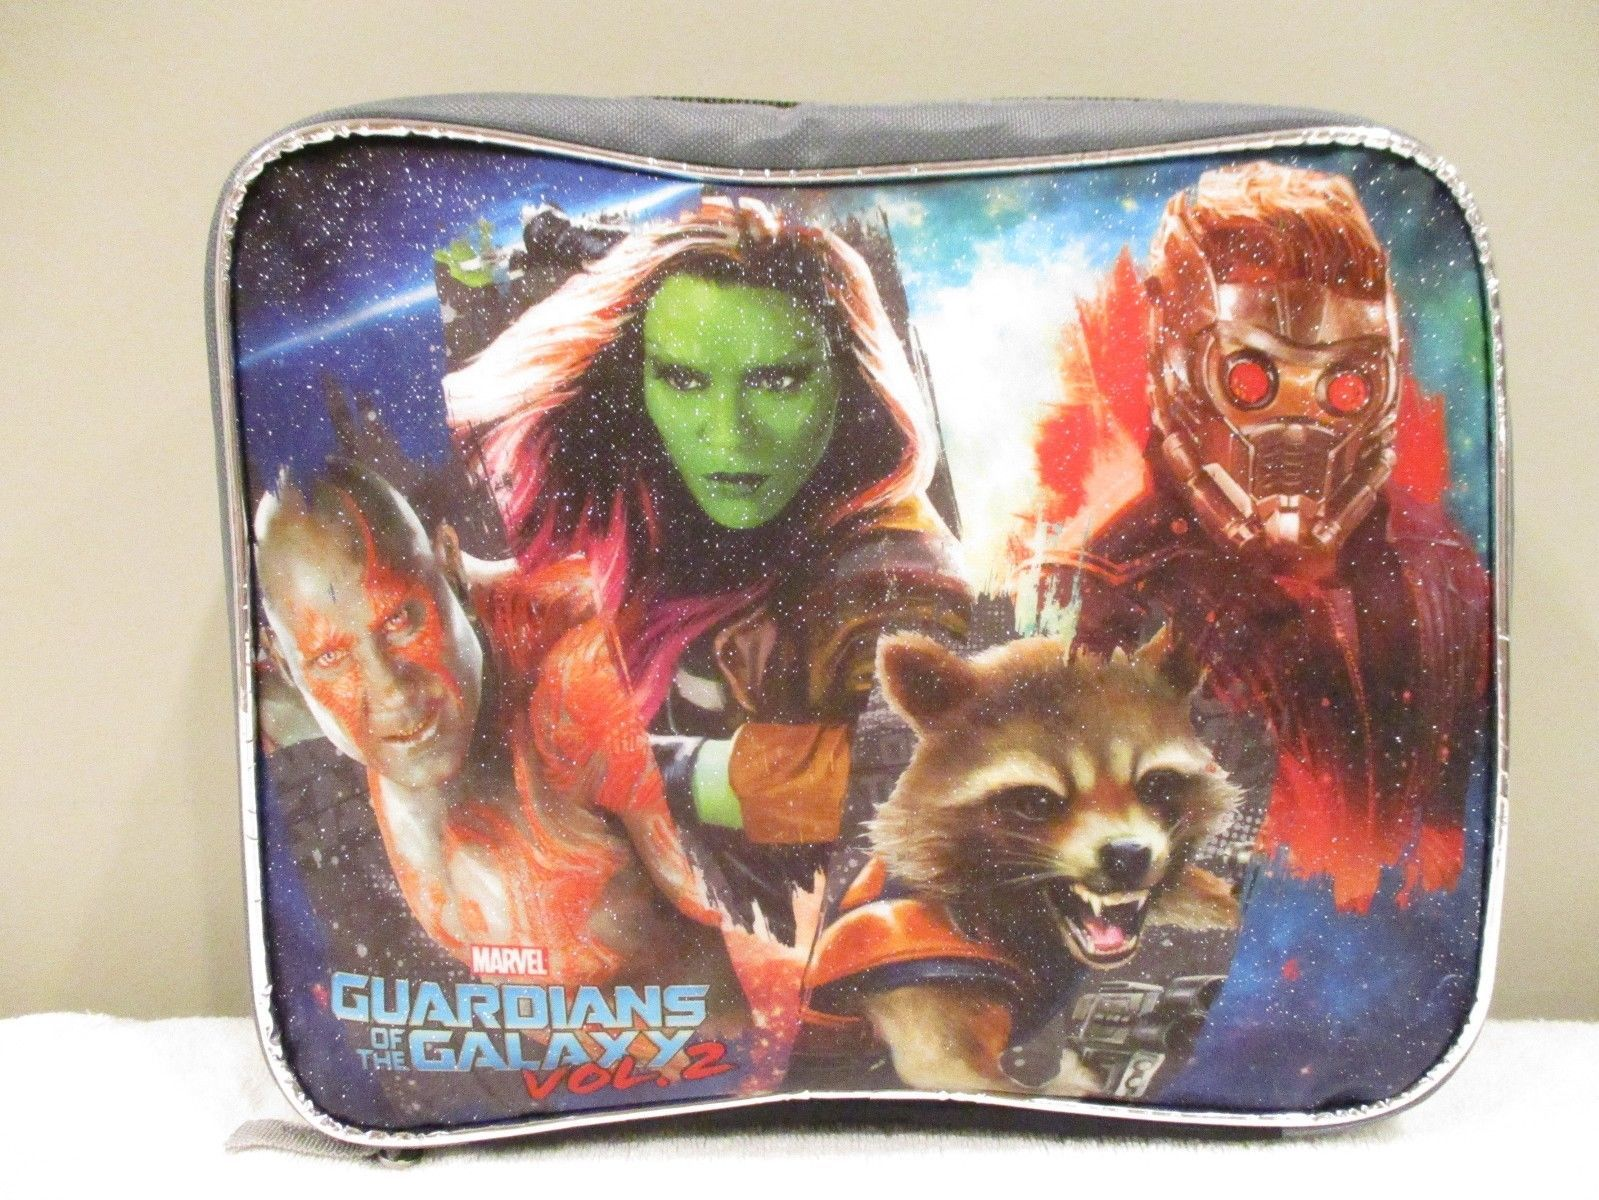 Marvel Guardians of the Galaxy Volume 2 Childrens Backpack and Lunchbox